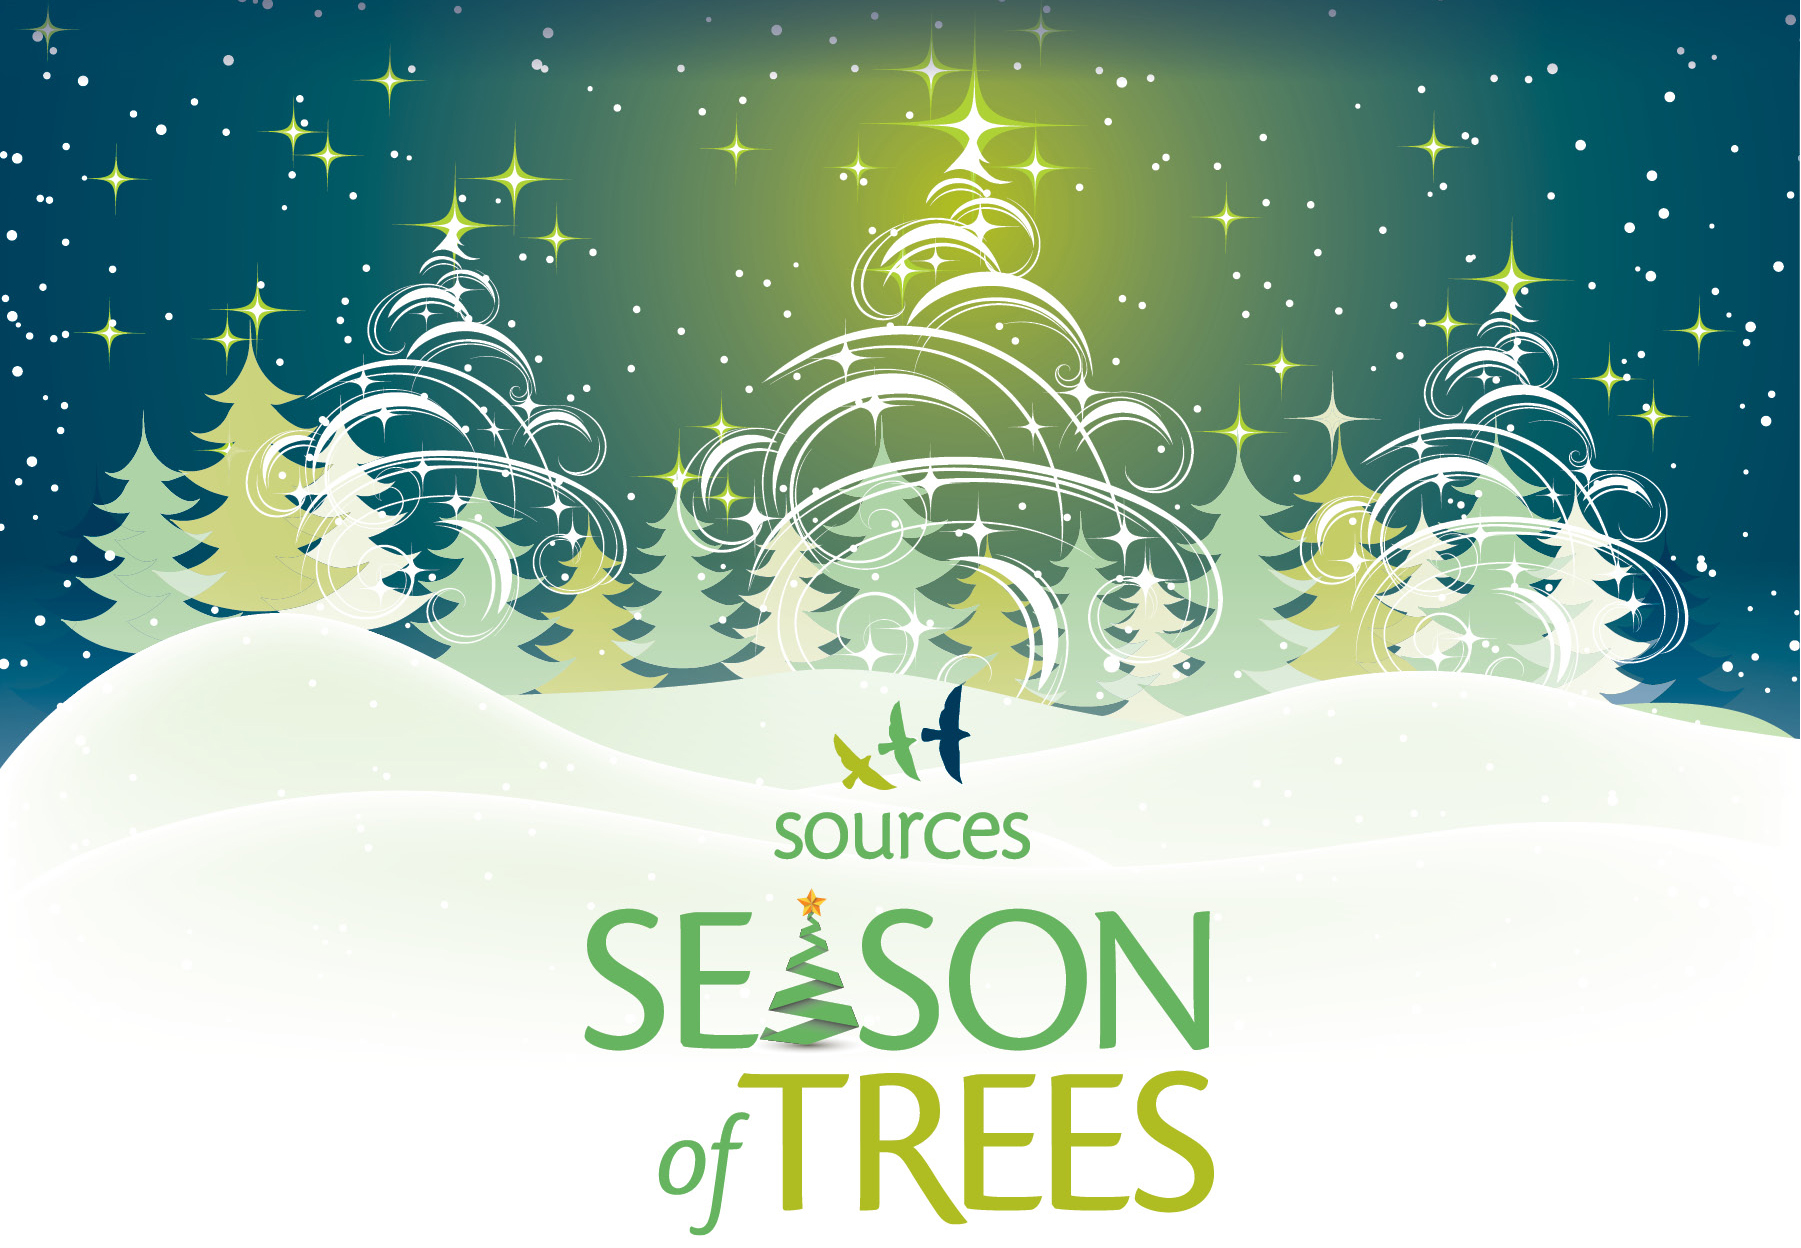 Sources_SeasonOfTrees_CC